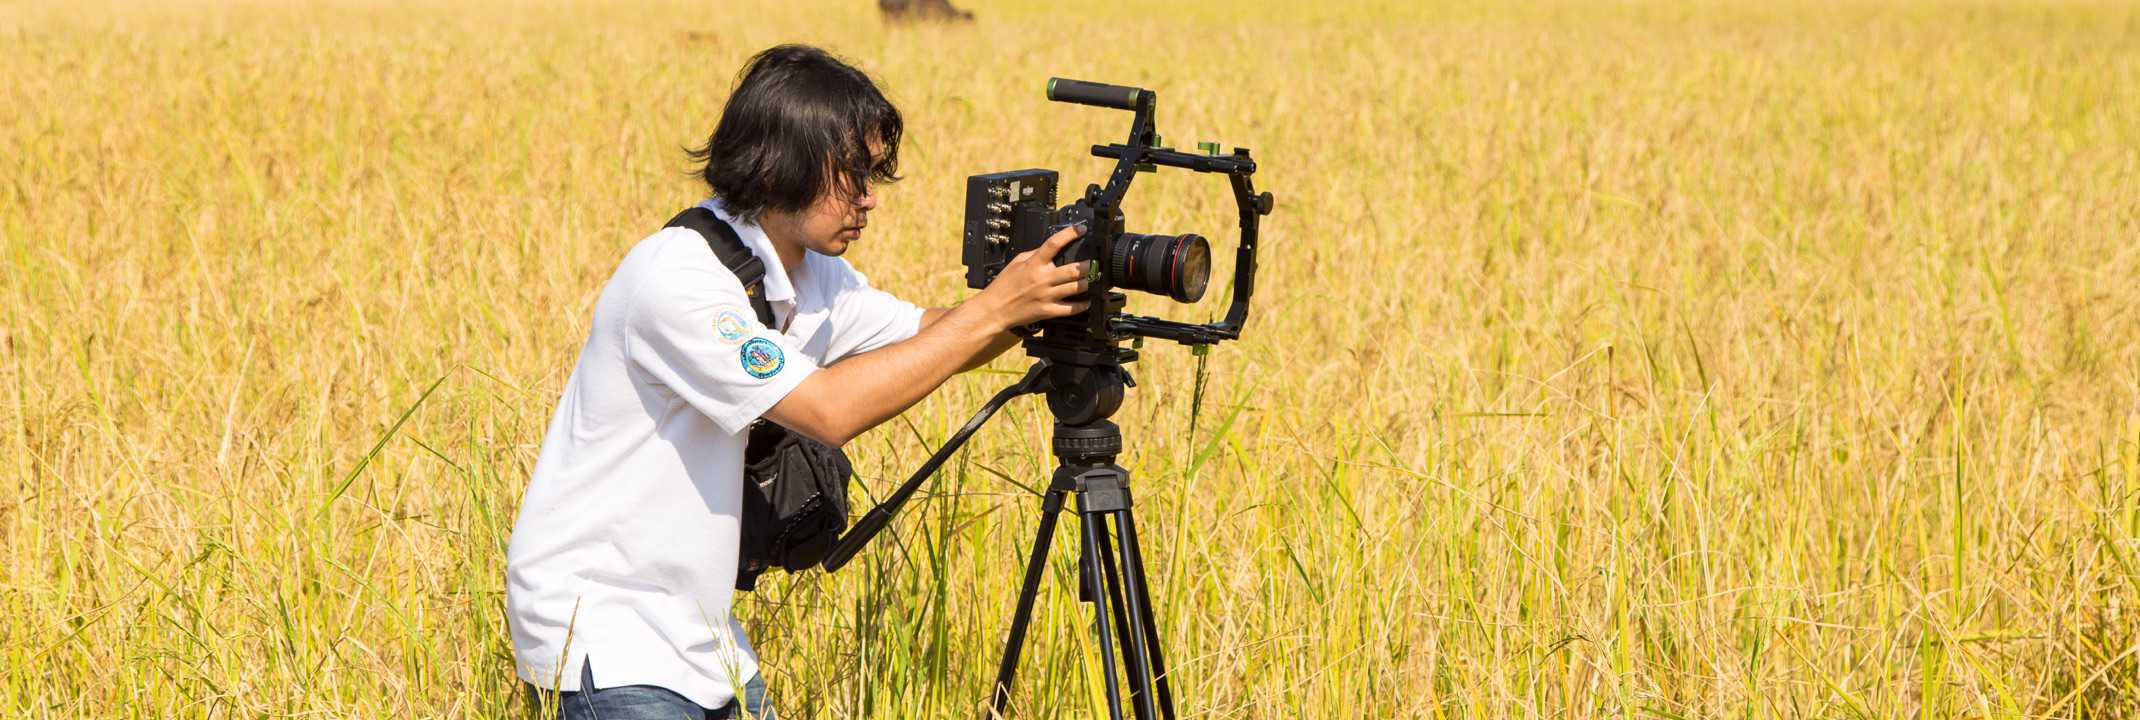 Best Tripods for DSLR Video Shooting   Compare Top 4 Models